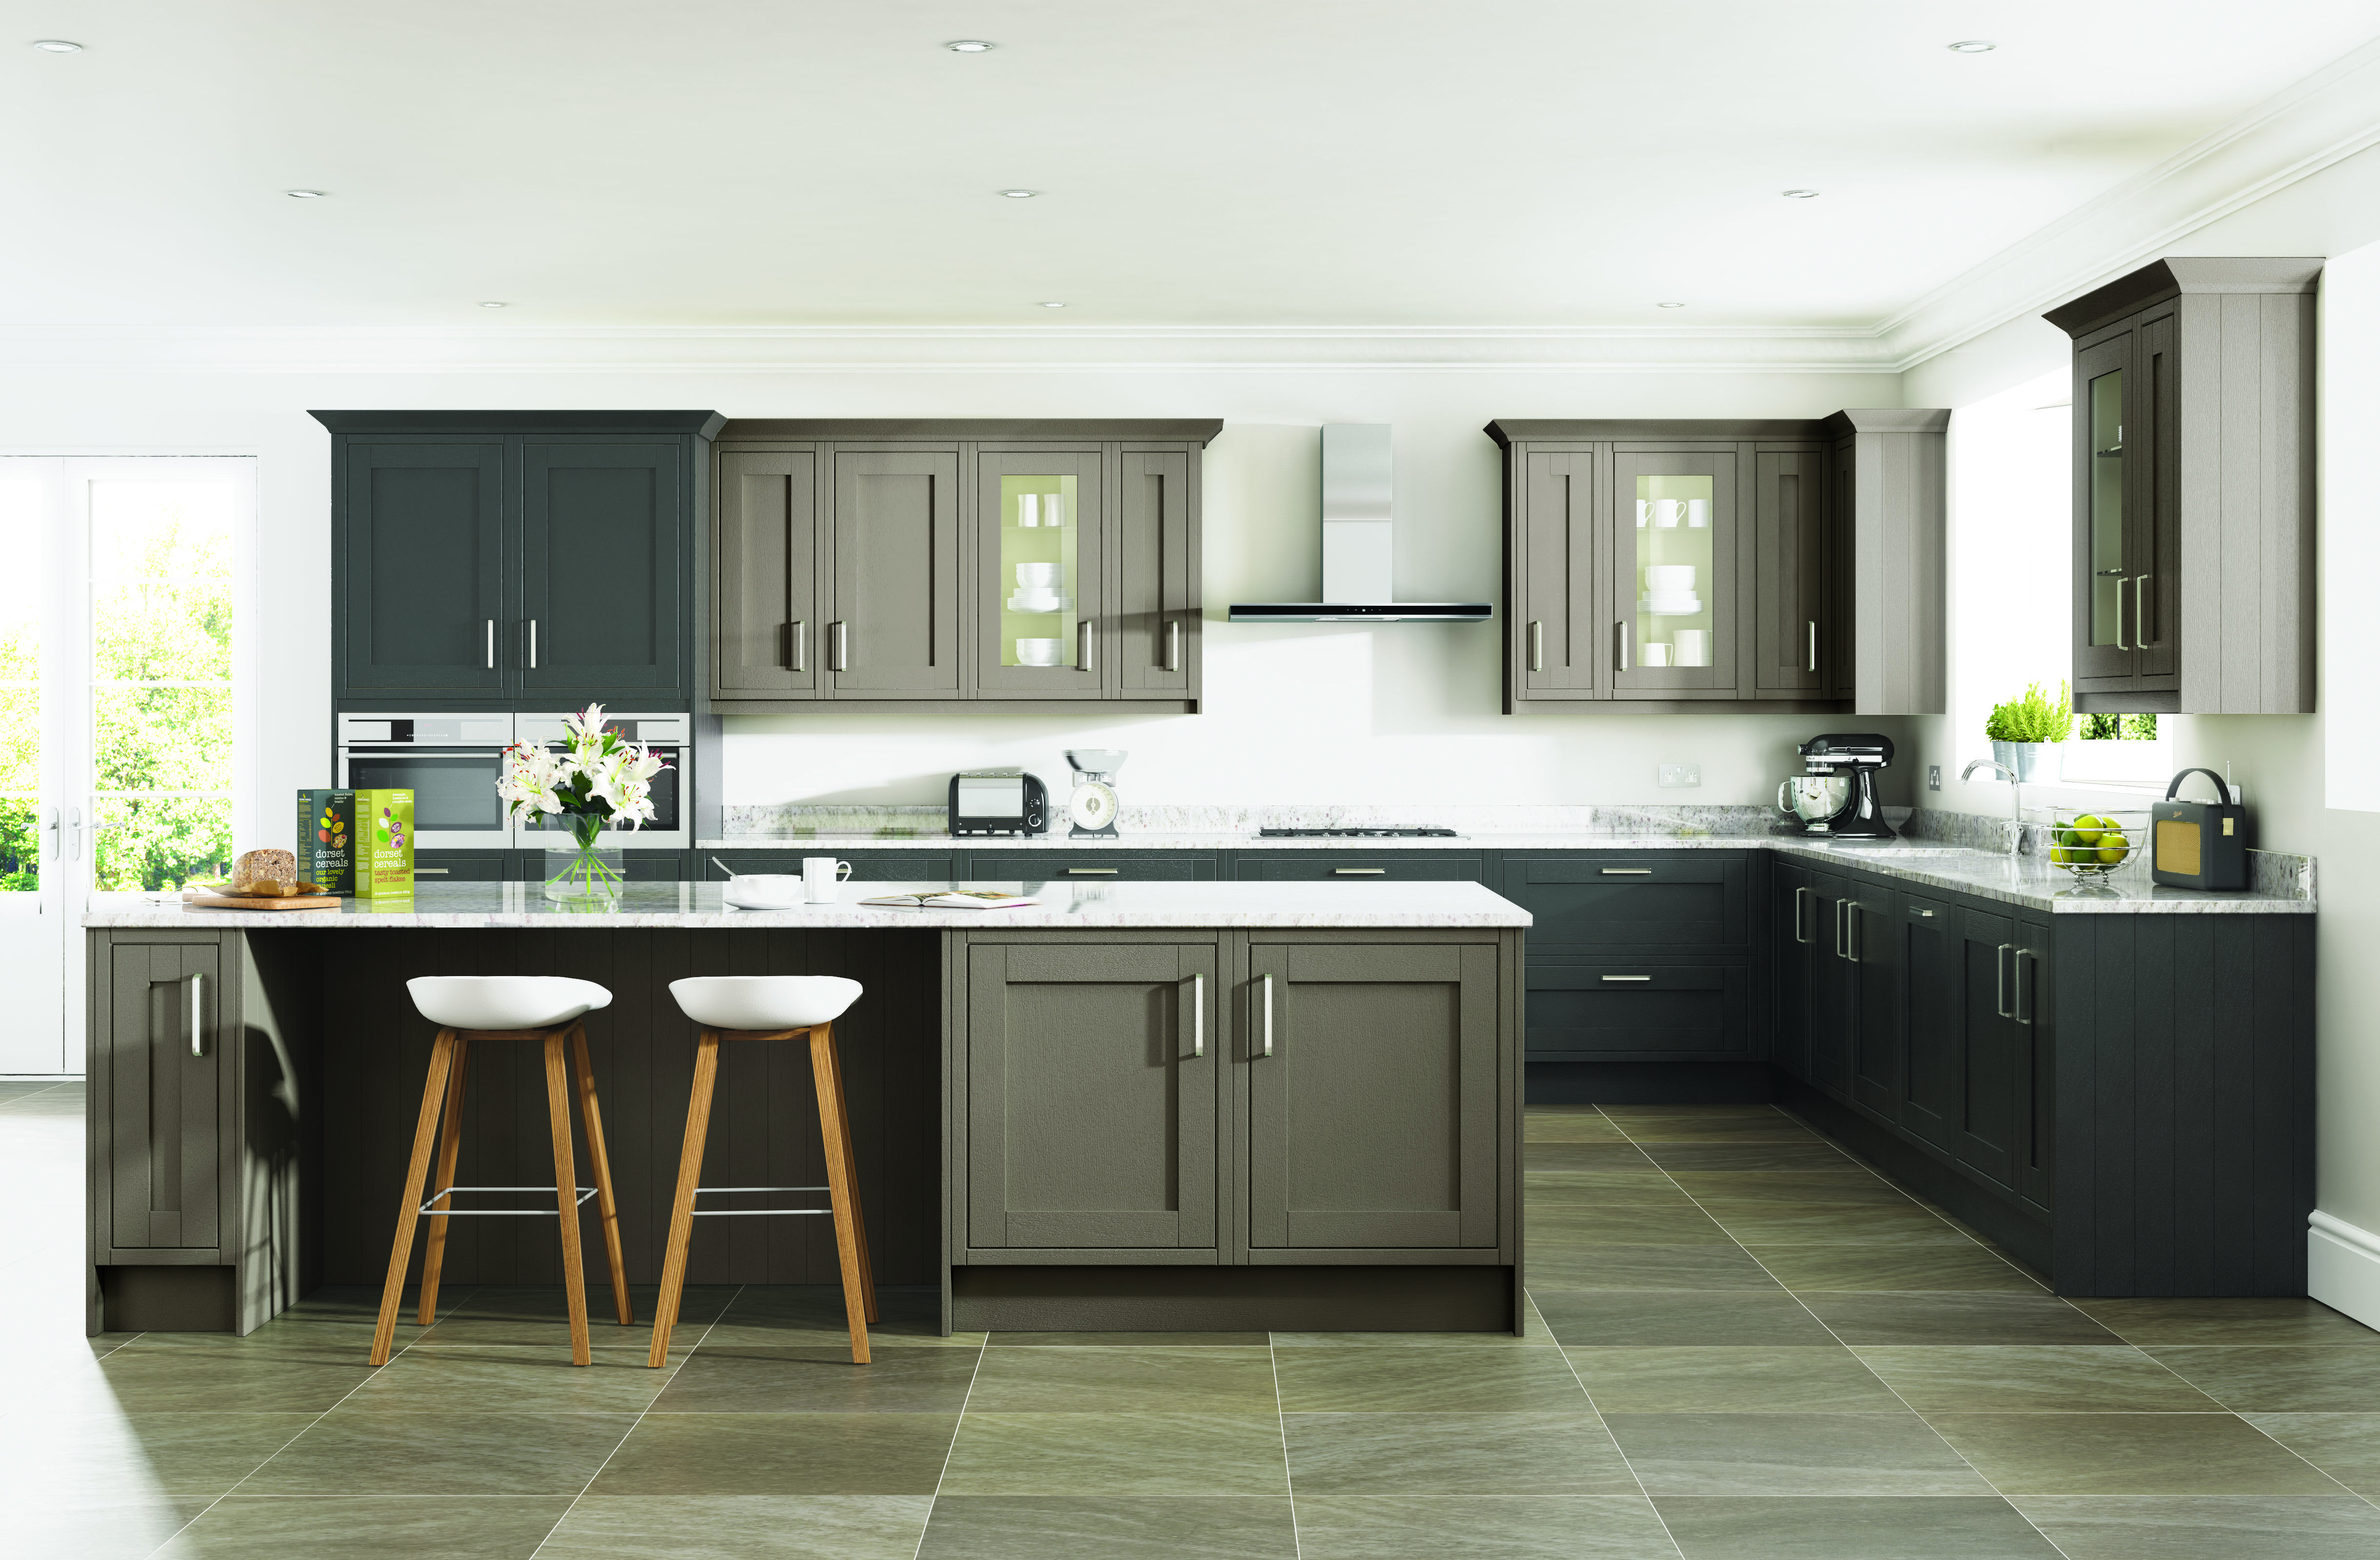 Pin by Academy Home Improvements on Timeless Kitchen